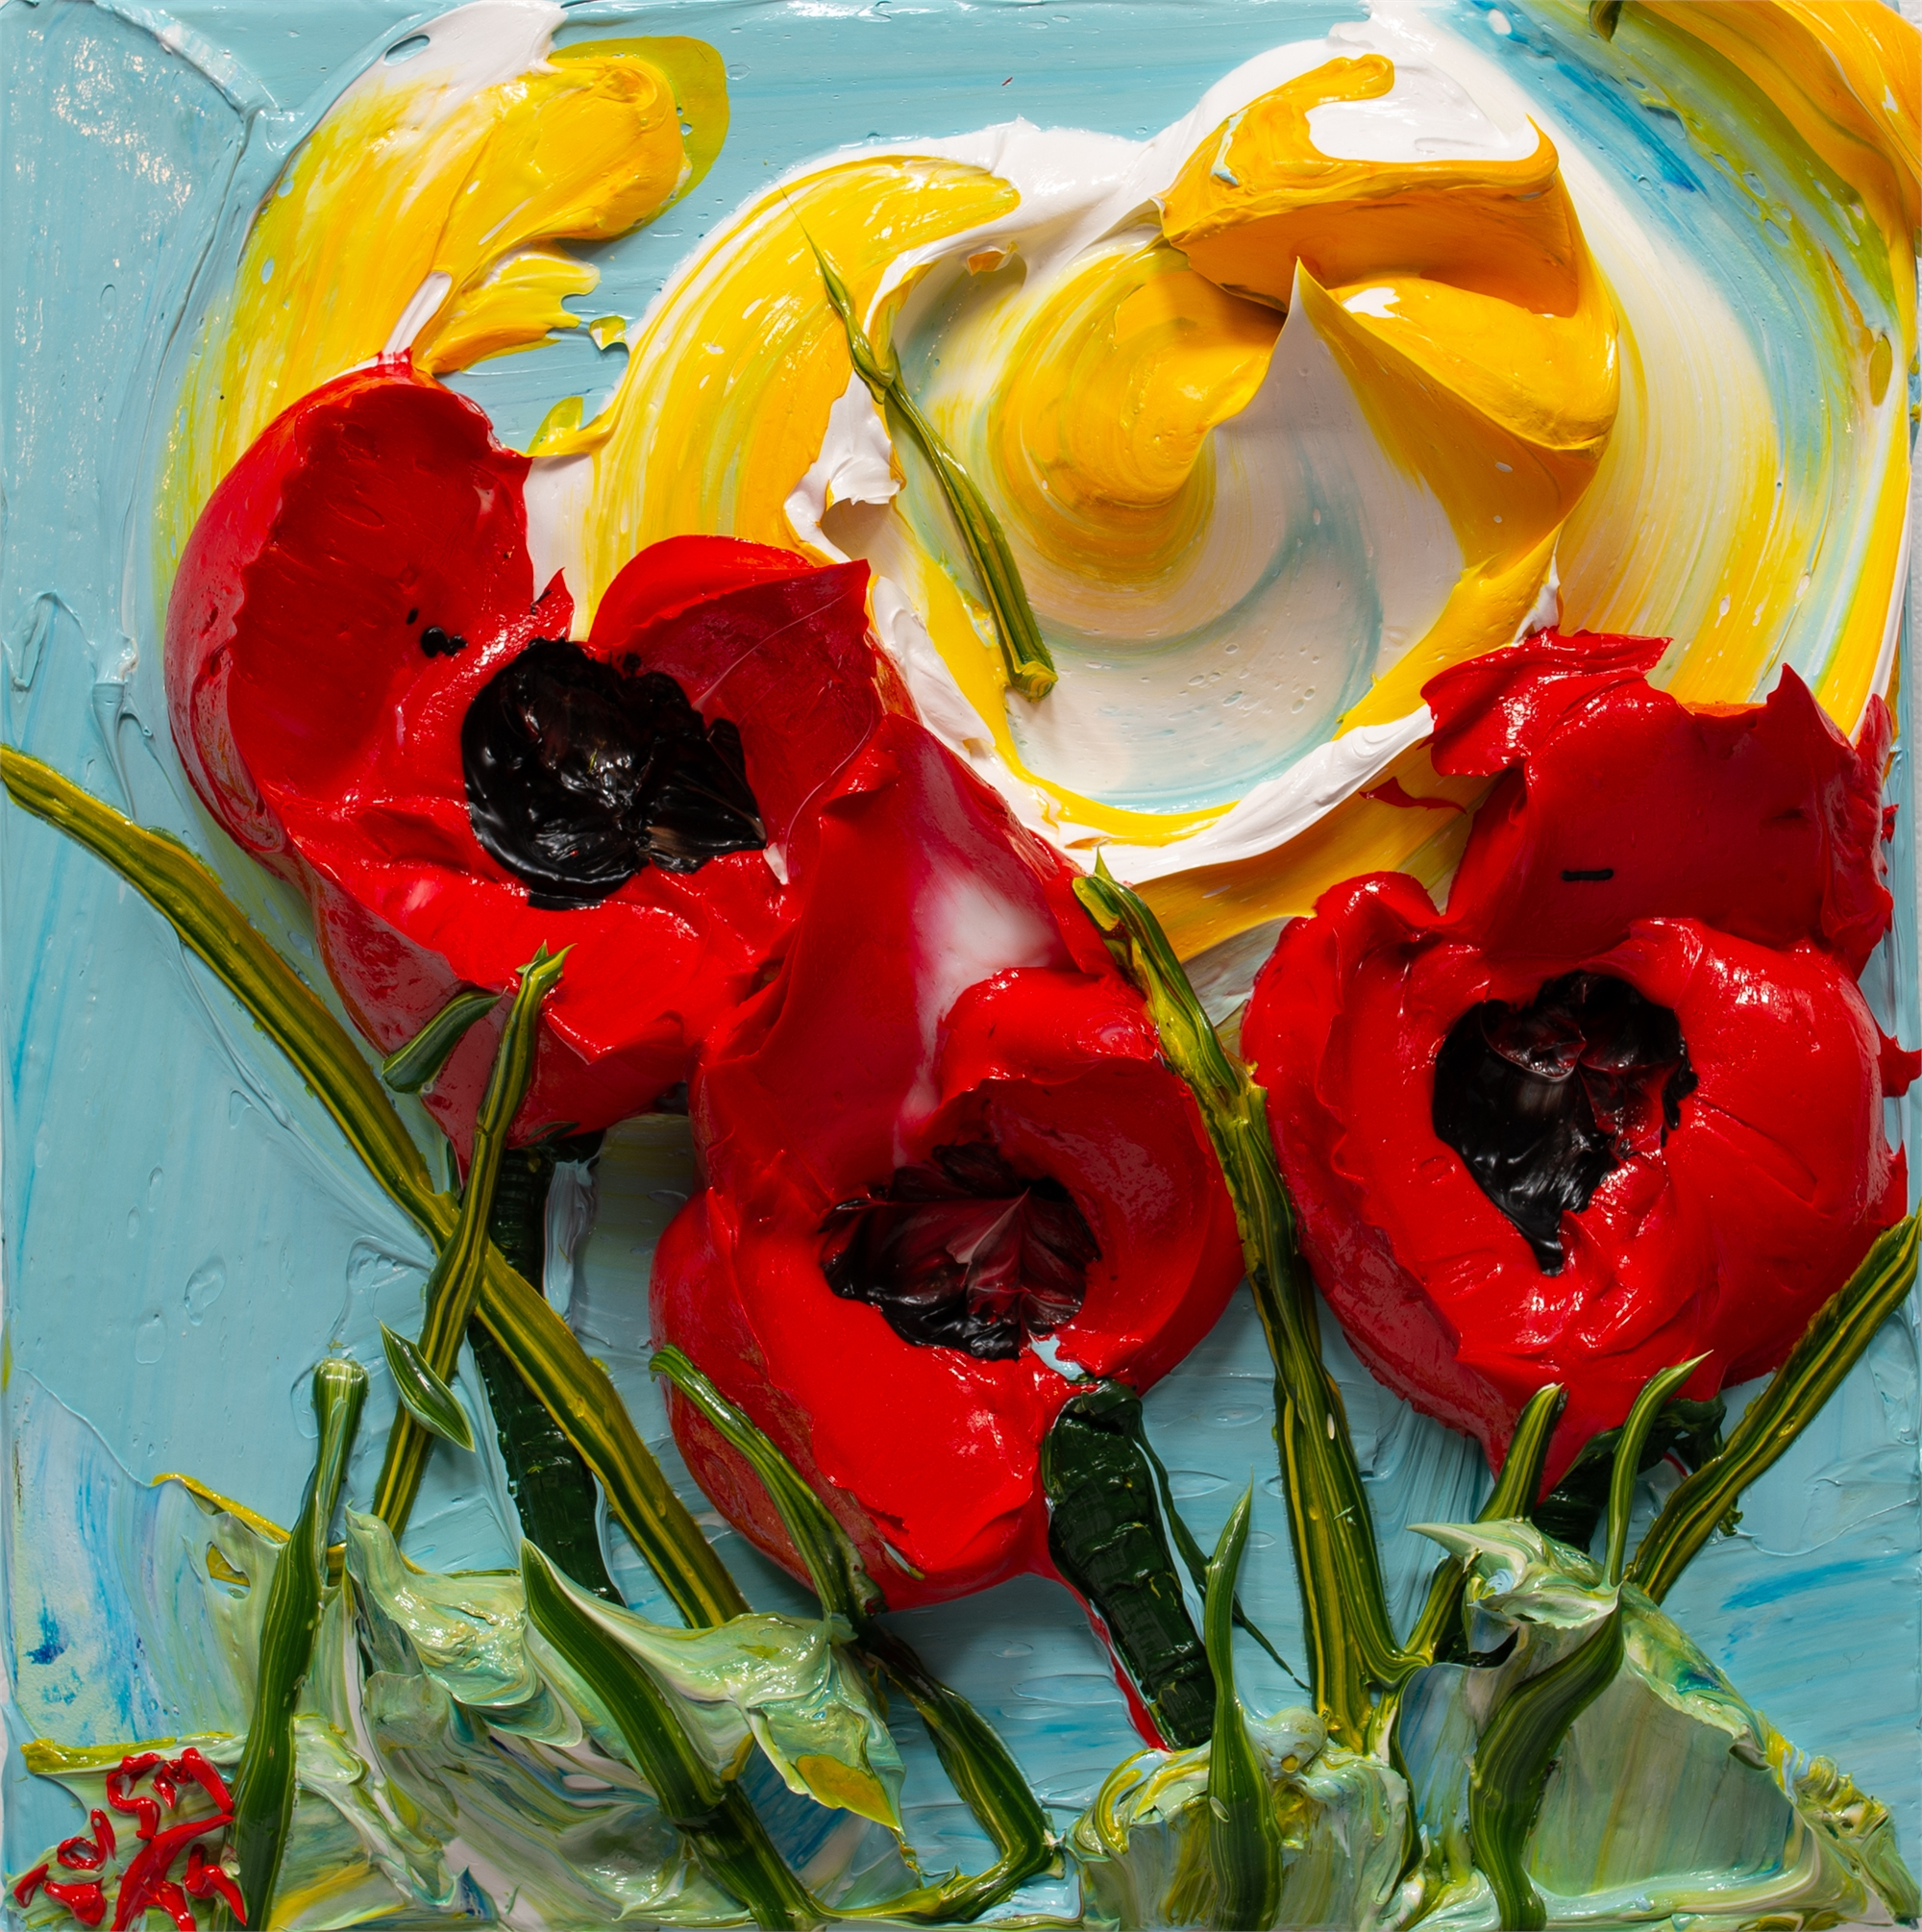 POPPY FLOWERS-PF-12X12-2019-173 by JUSTIN GAFFREY